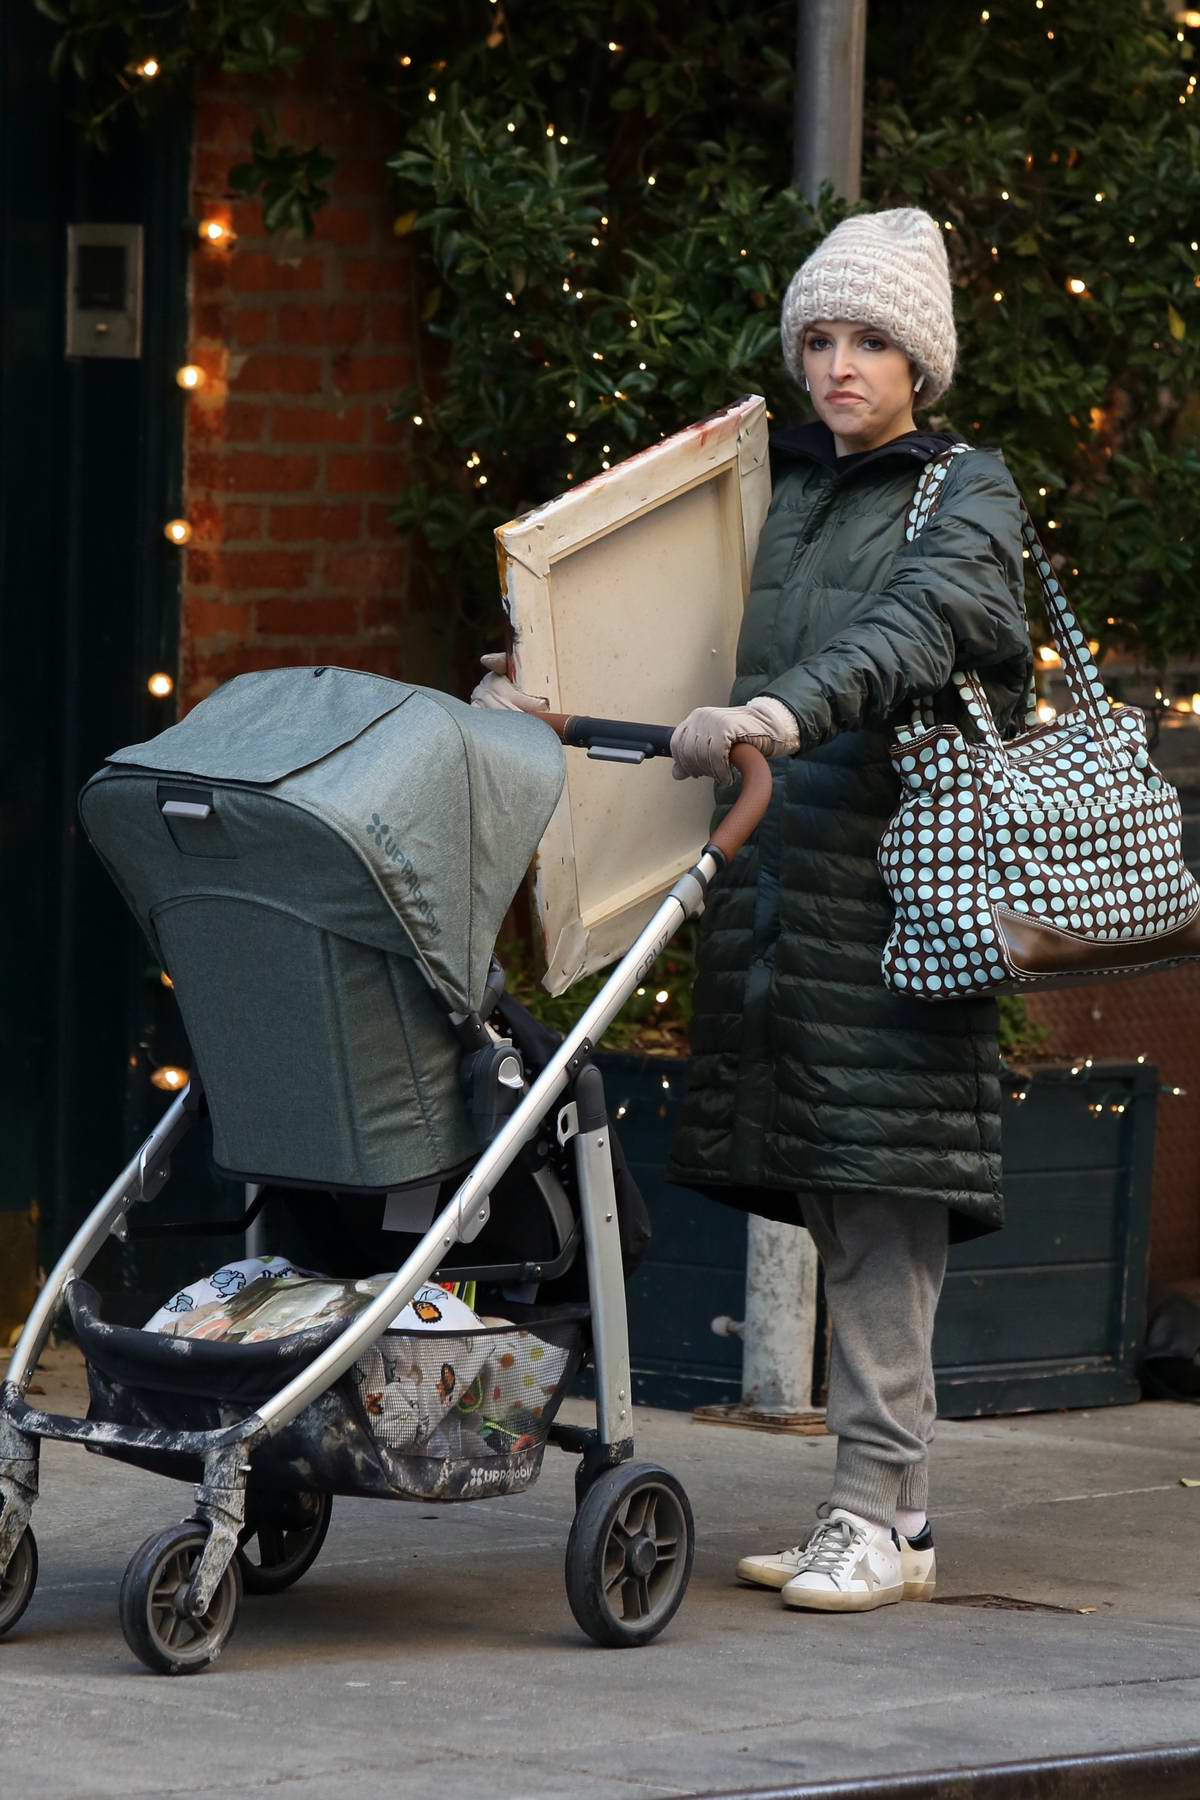 Anna Kendrick seen while filming a scene with a baby stroller for 'Love Life' in the West Village, New York City